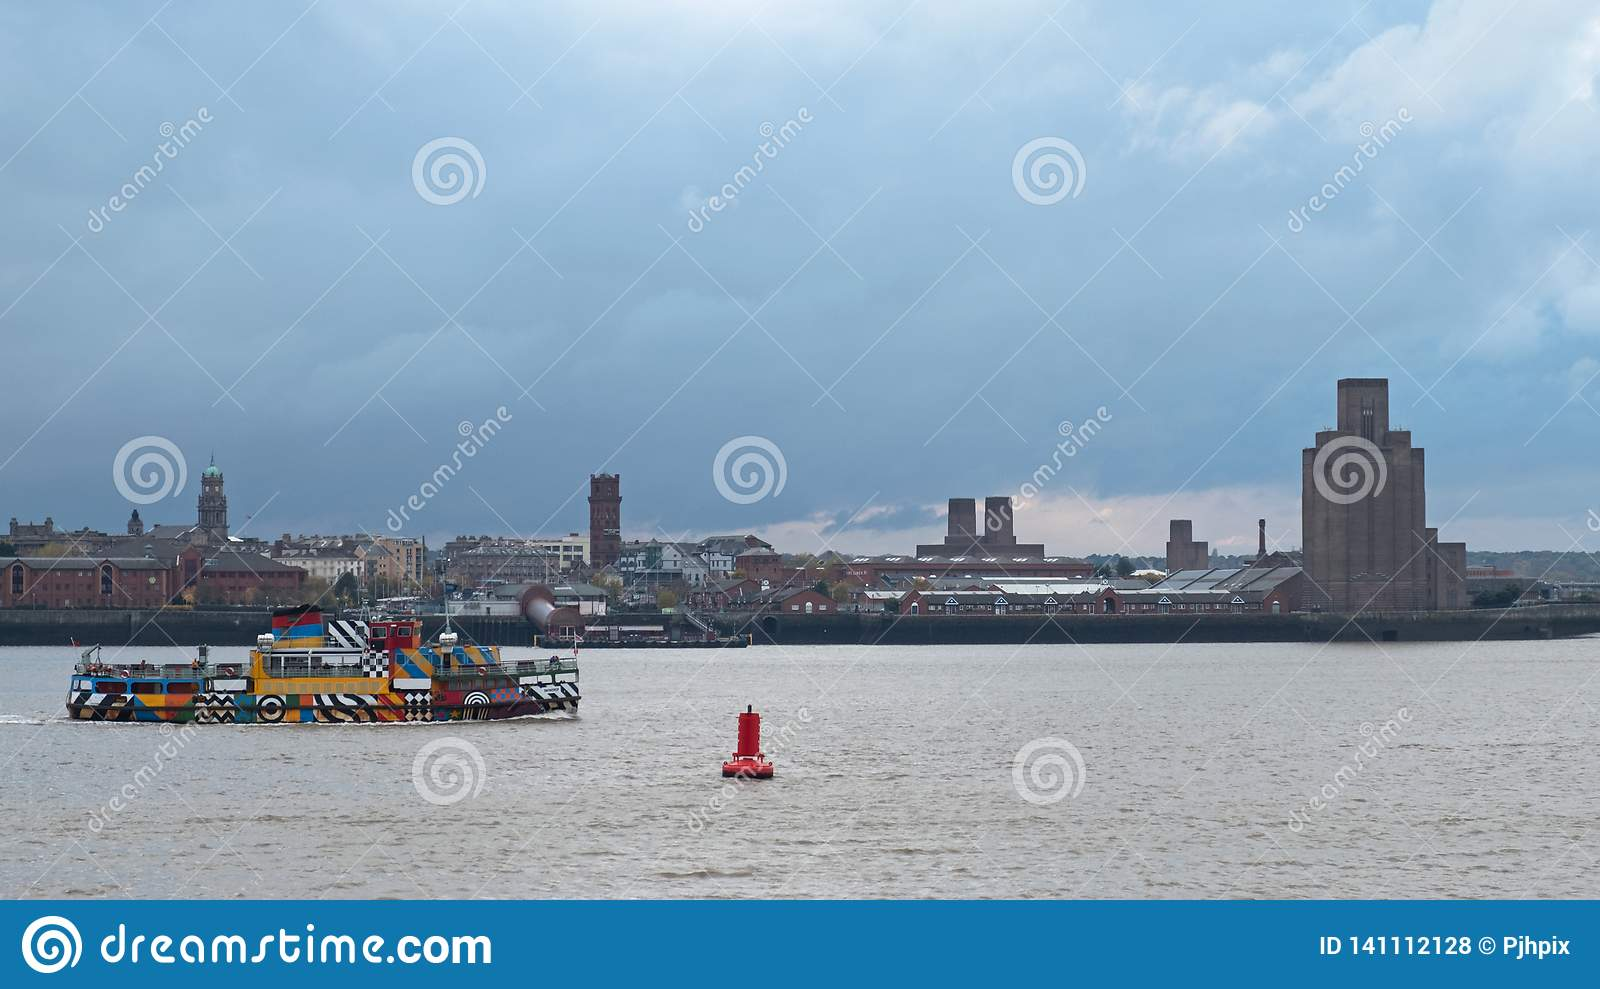 Crossing The River Mersey By Ferry Editorial Stock Photo ... on